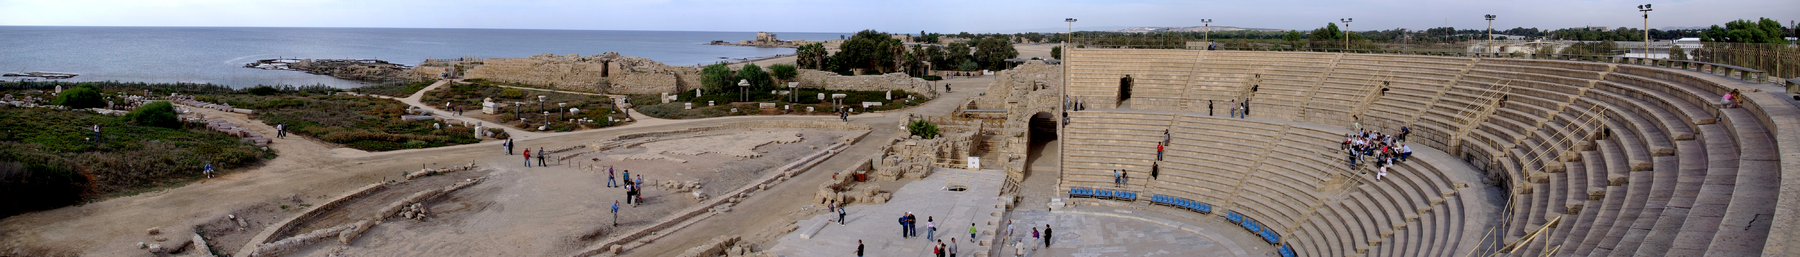 Caesarea Wikivoyage.png